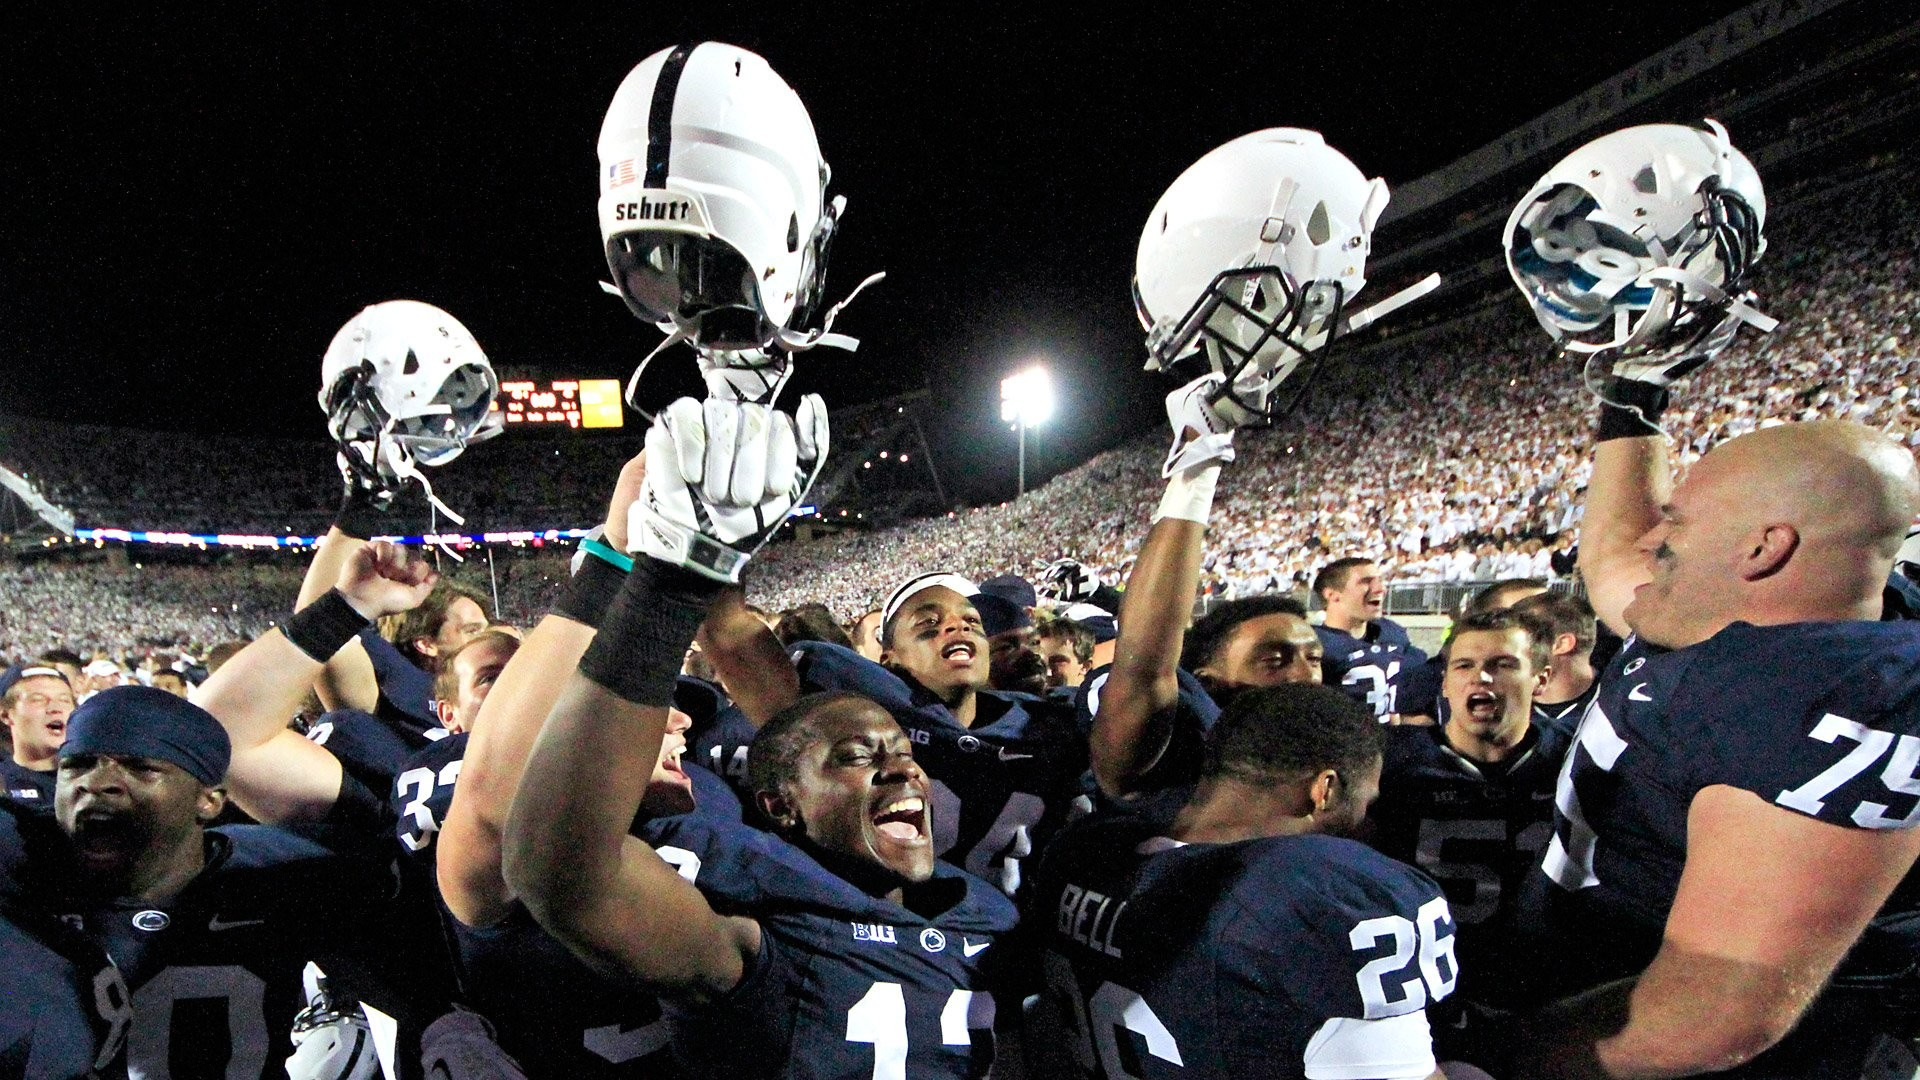 1920x1080 PENN STATE NITTANY LIONS college football wallpaper |  | 595756 |  WallpaperUP